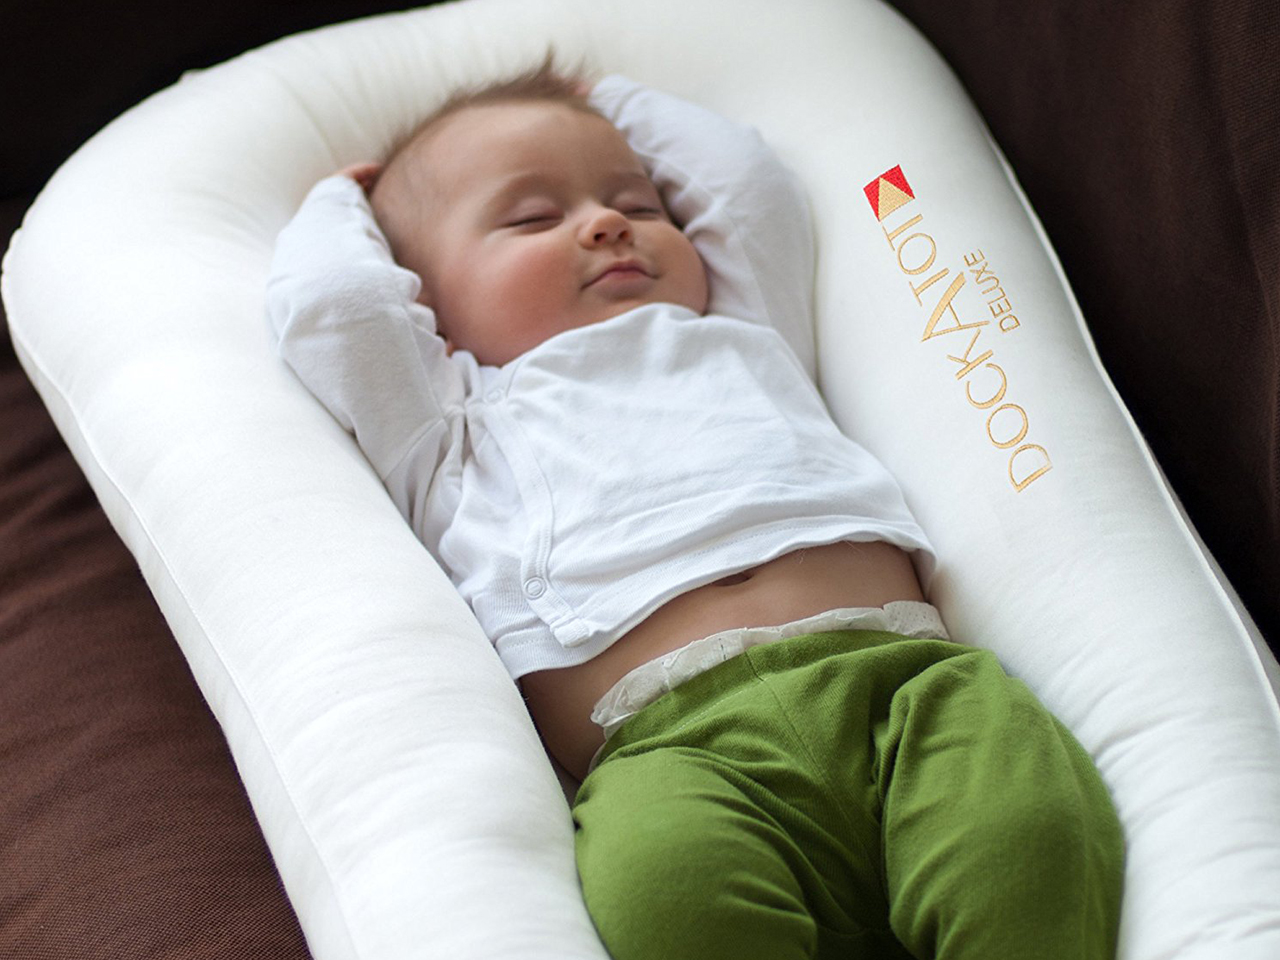 What Can Baby Sleep In Next To Bed The Dangerous Way Parents Are Using Their Dockatots